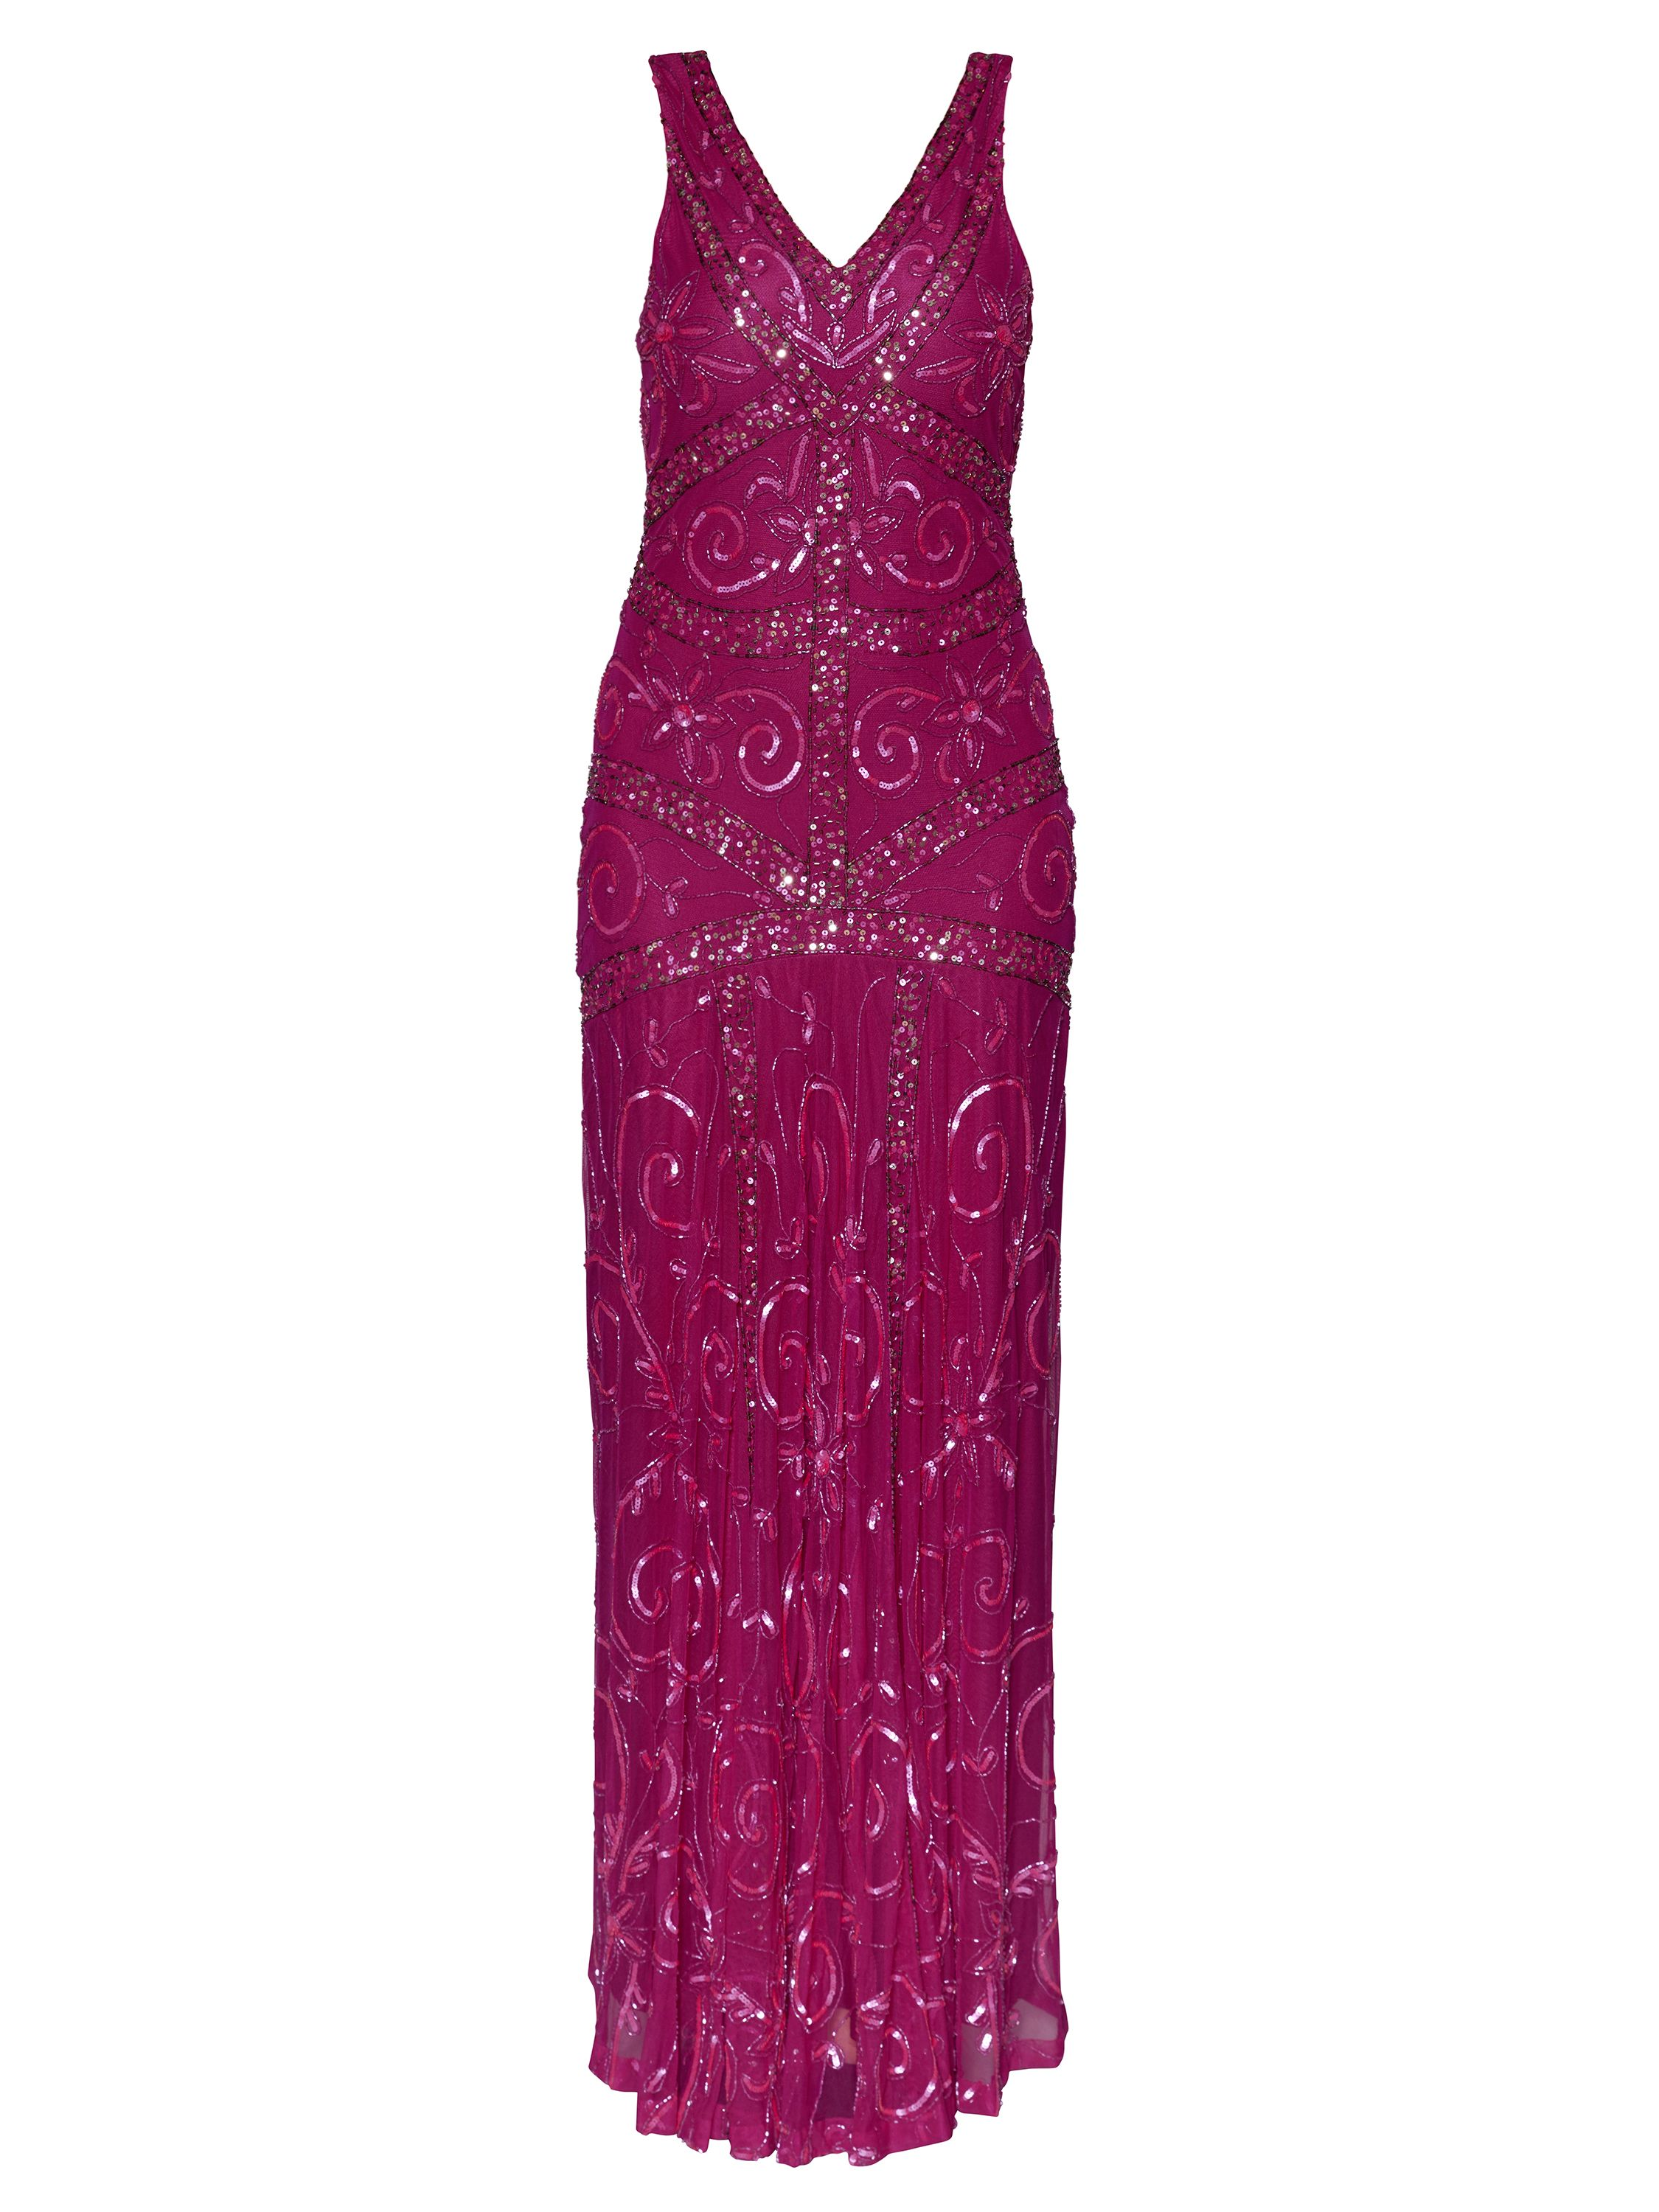 Gina Bacconi Iris Beaded Maxi Dress, Pink